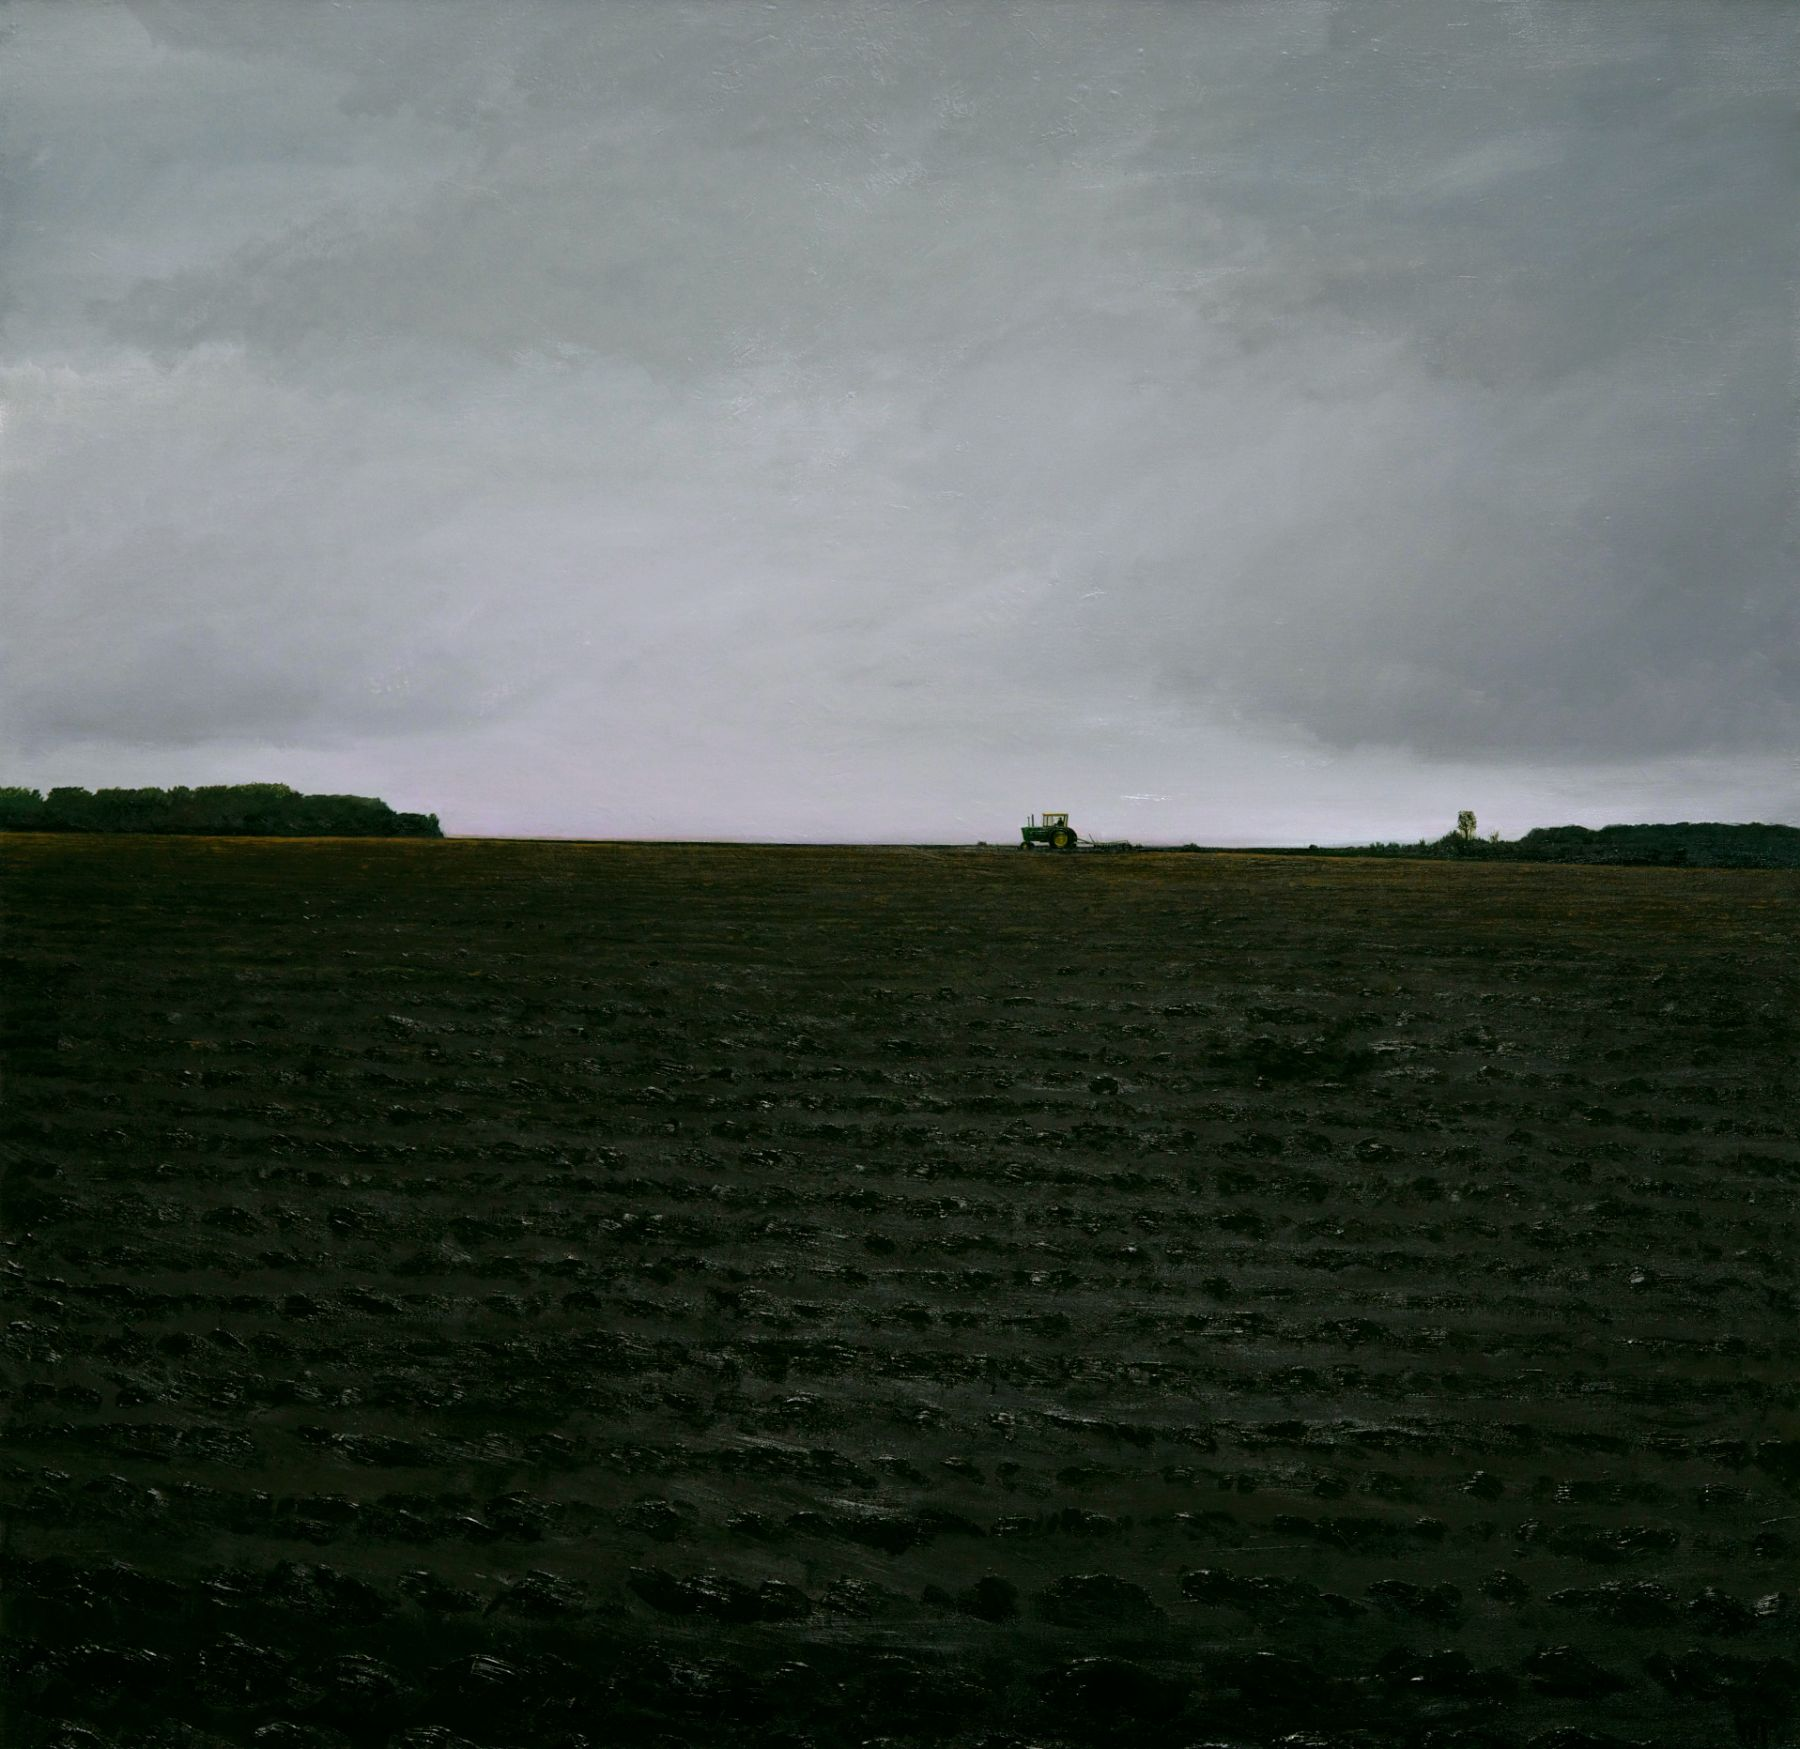 william beckman, J.D. Plowing, 2013-14, oil on canvas, 79 1/2 x 81 inches